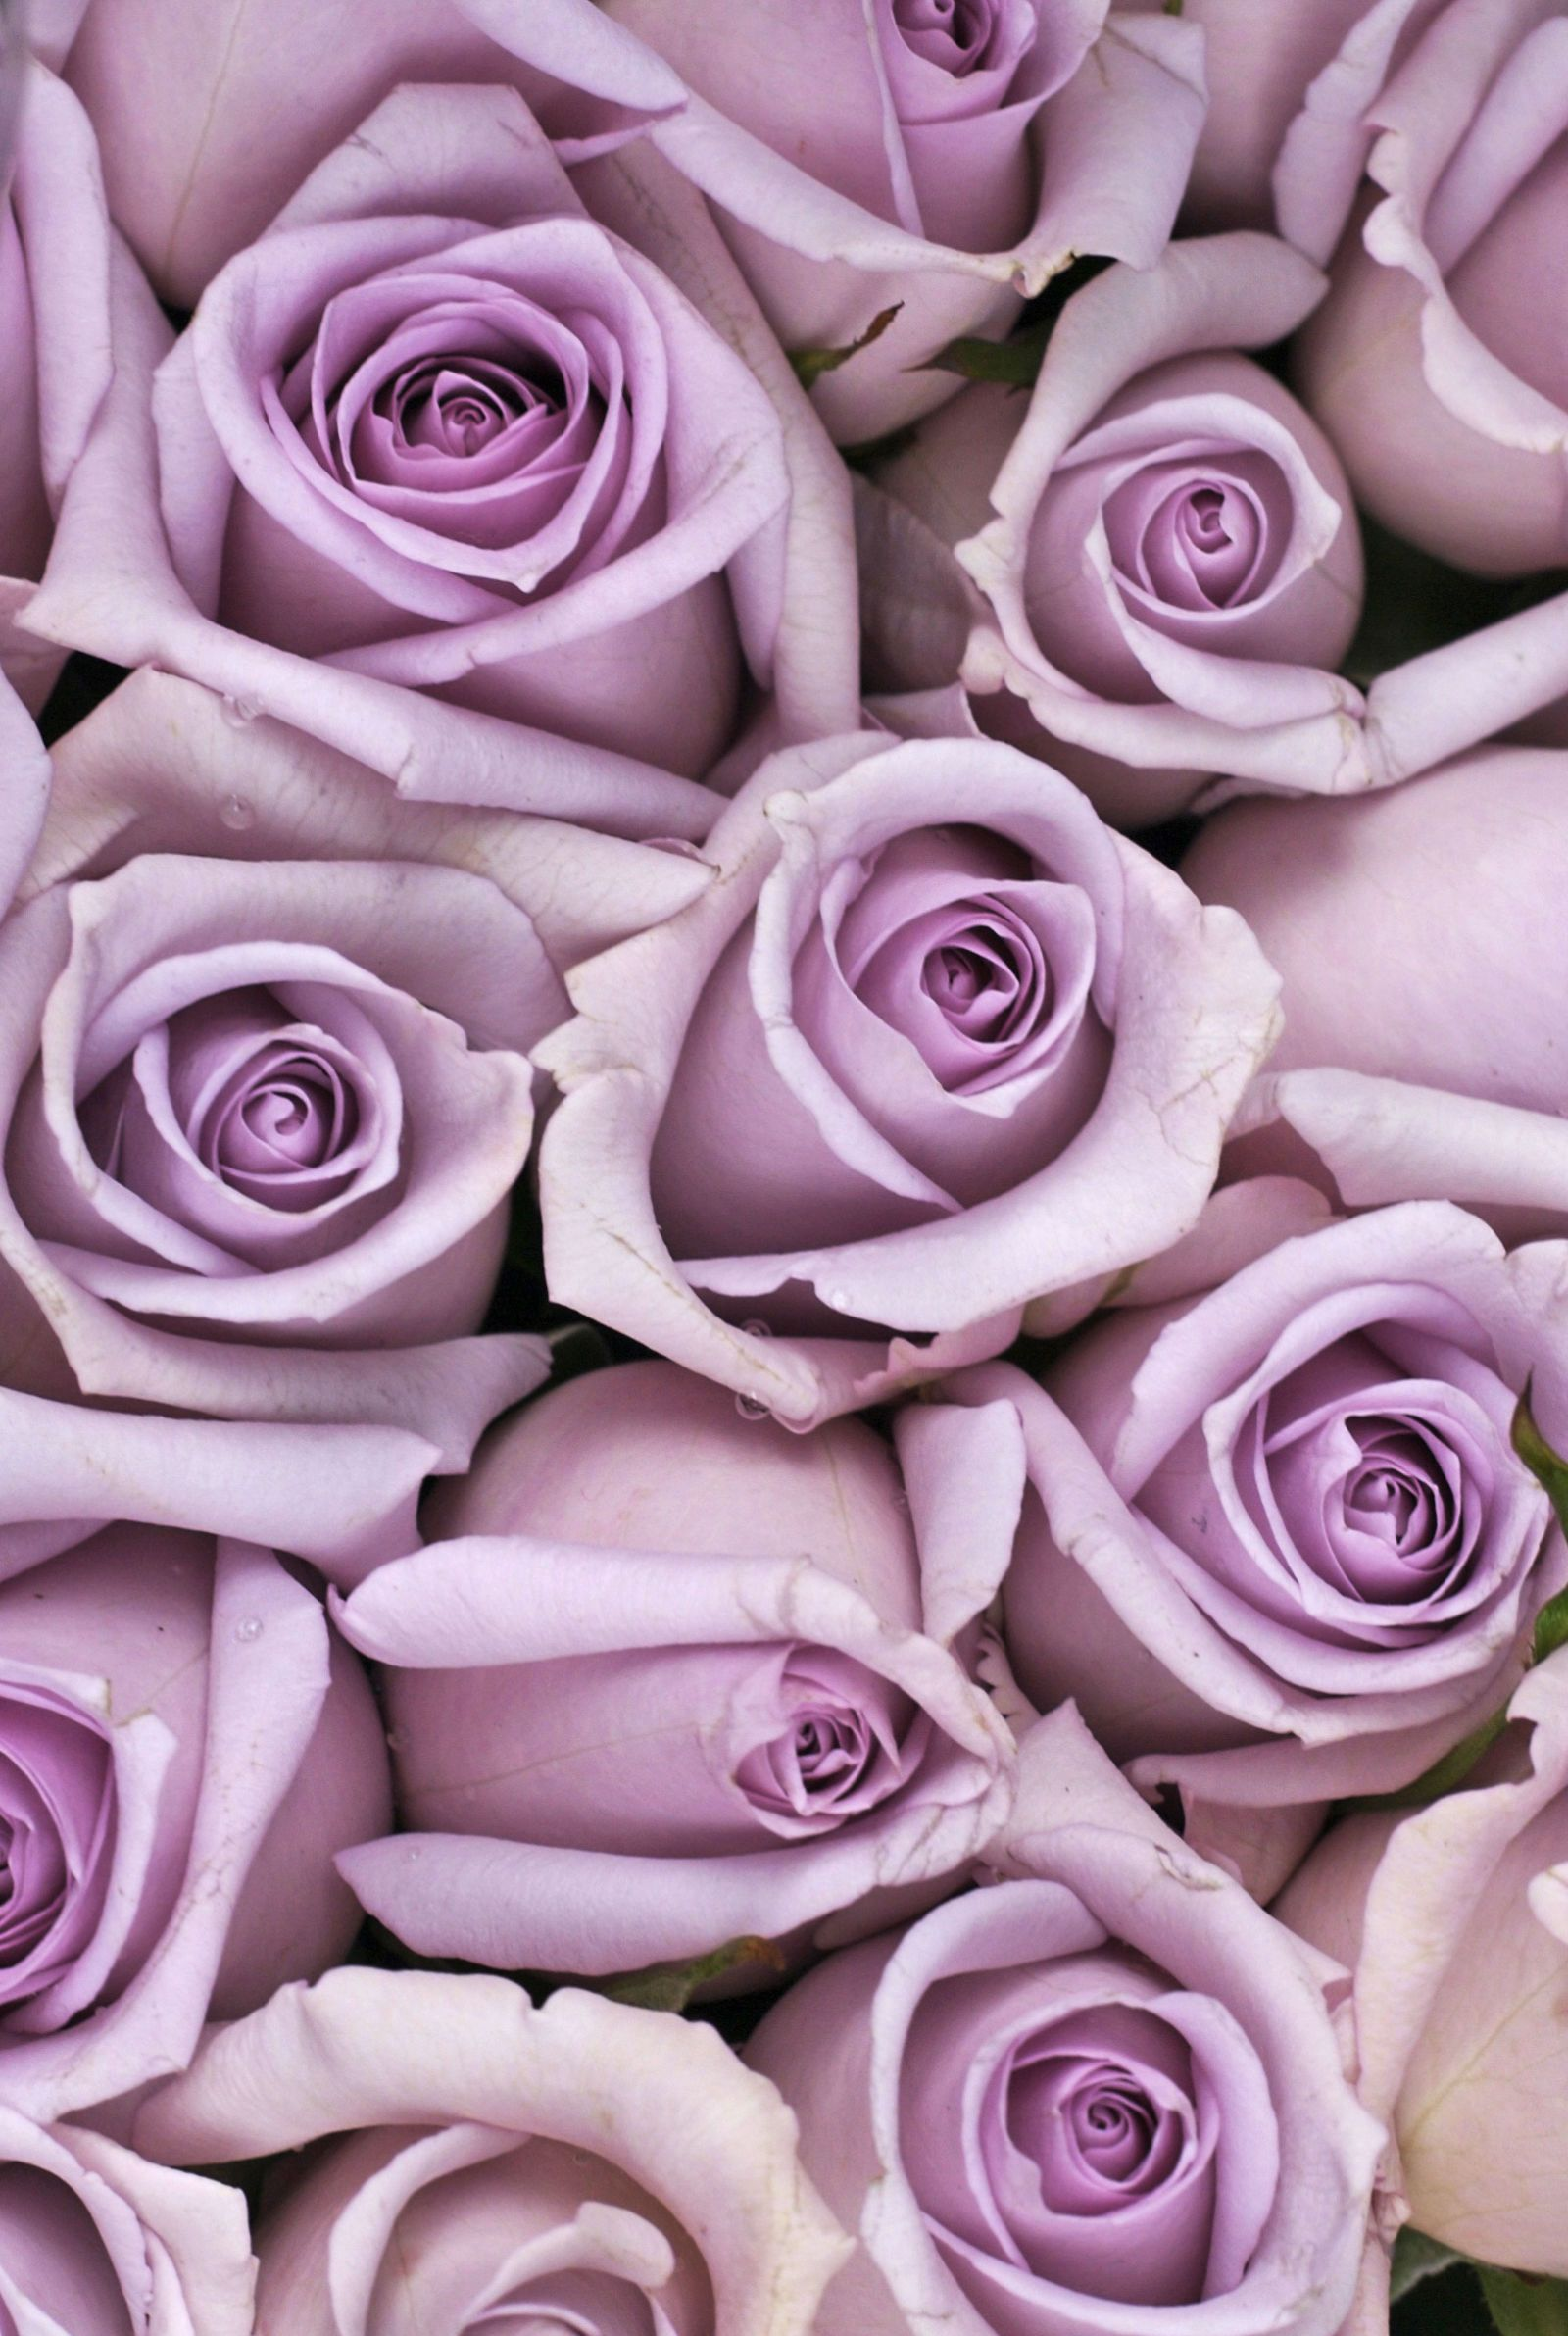 Coral Roses Are The Perfect Way To Celebrate Your First Valentine S Day Together Purple Roses Wallpaper Purple Roses Rose Color Meanings